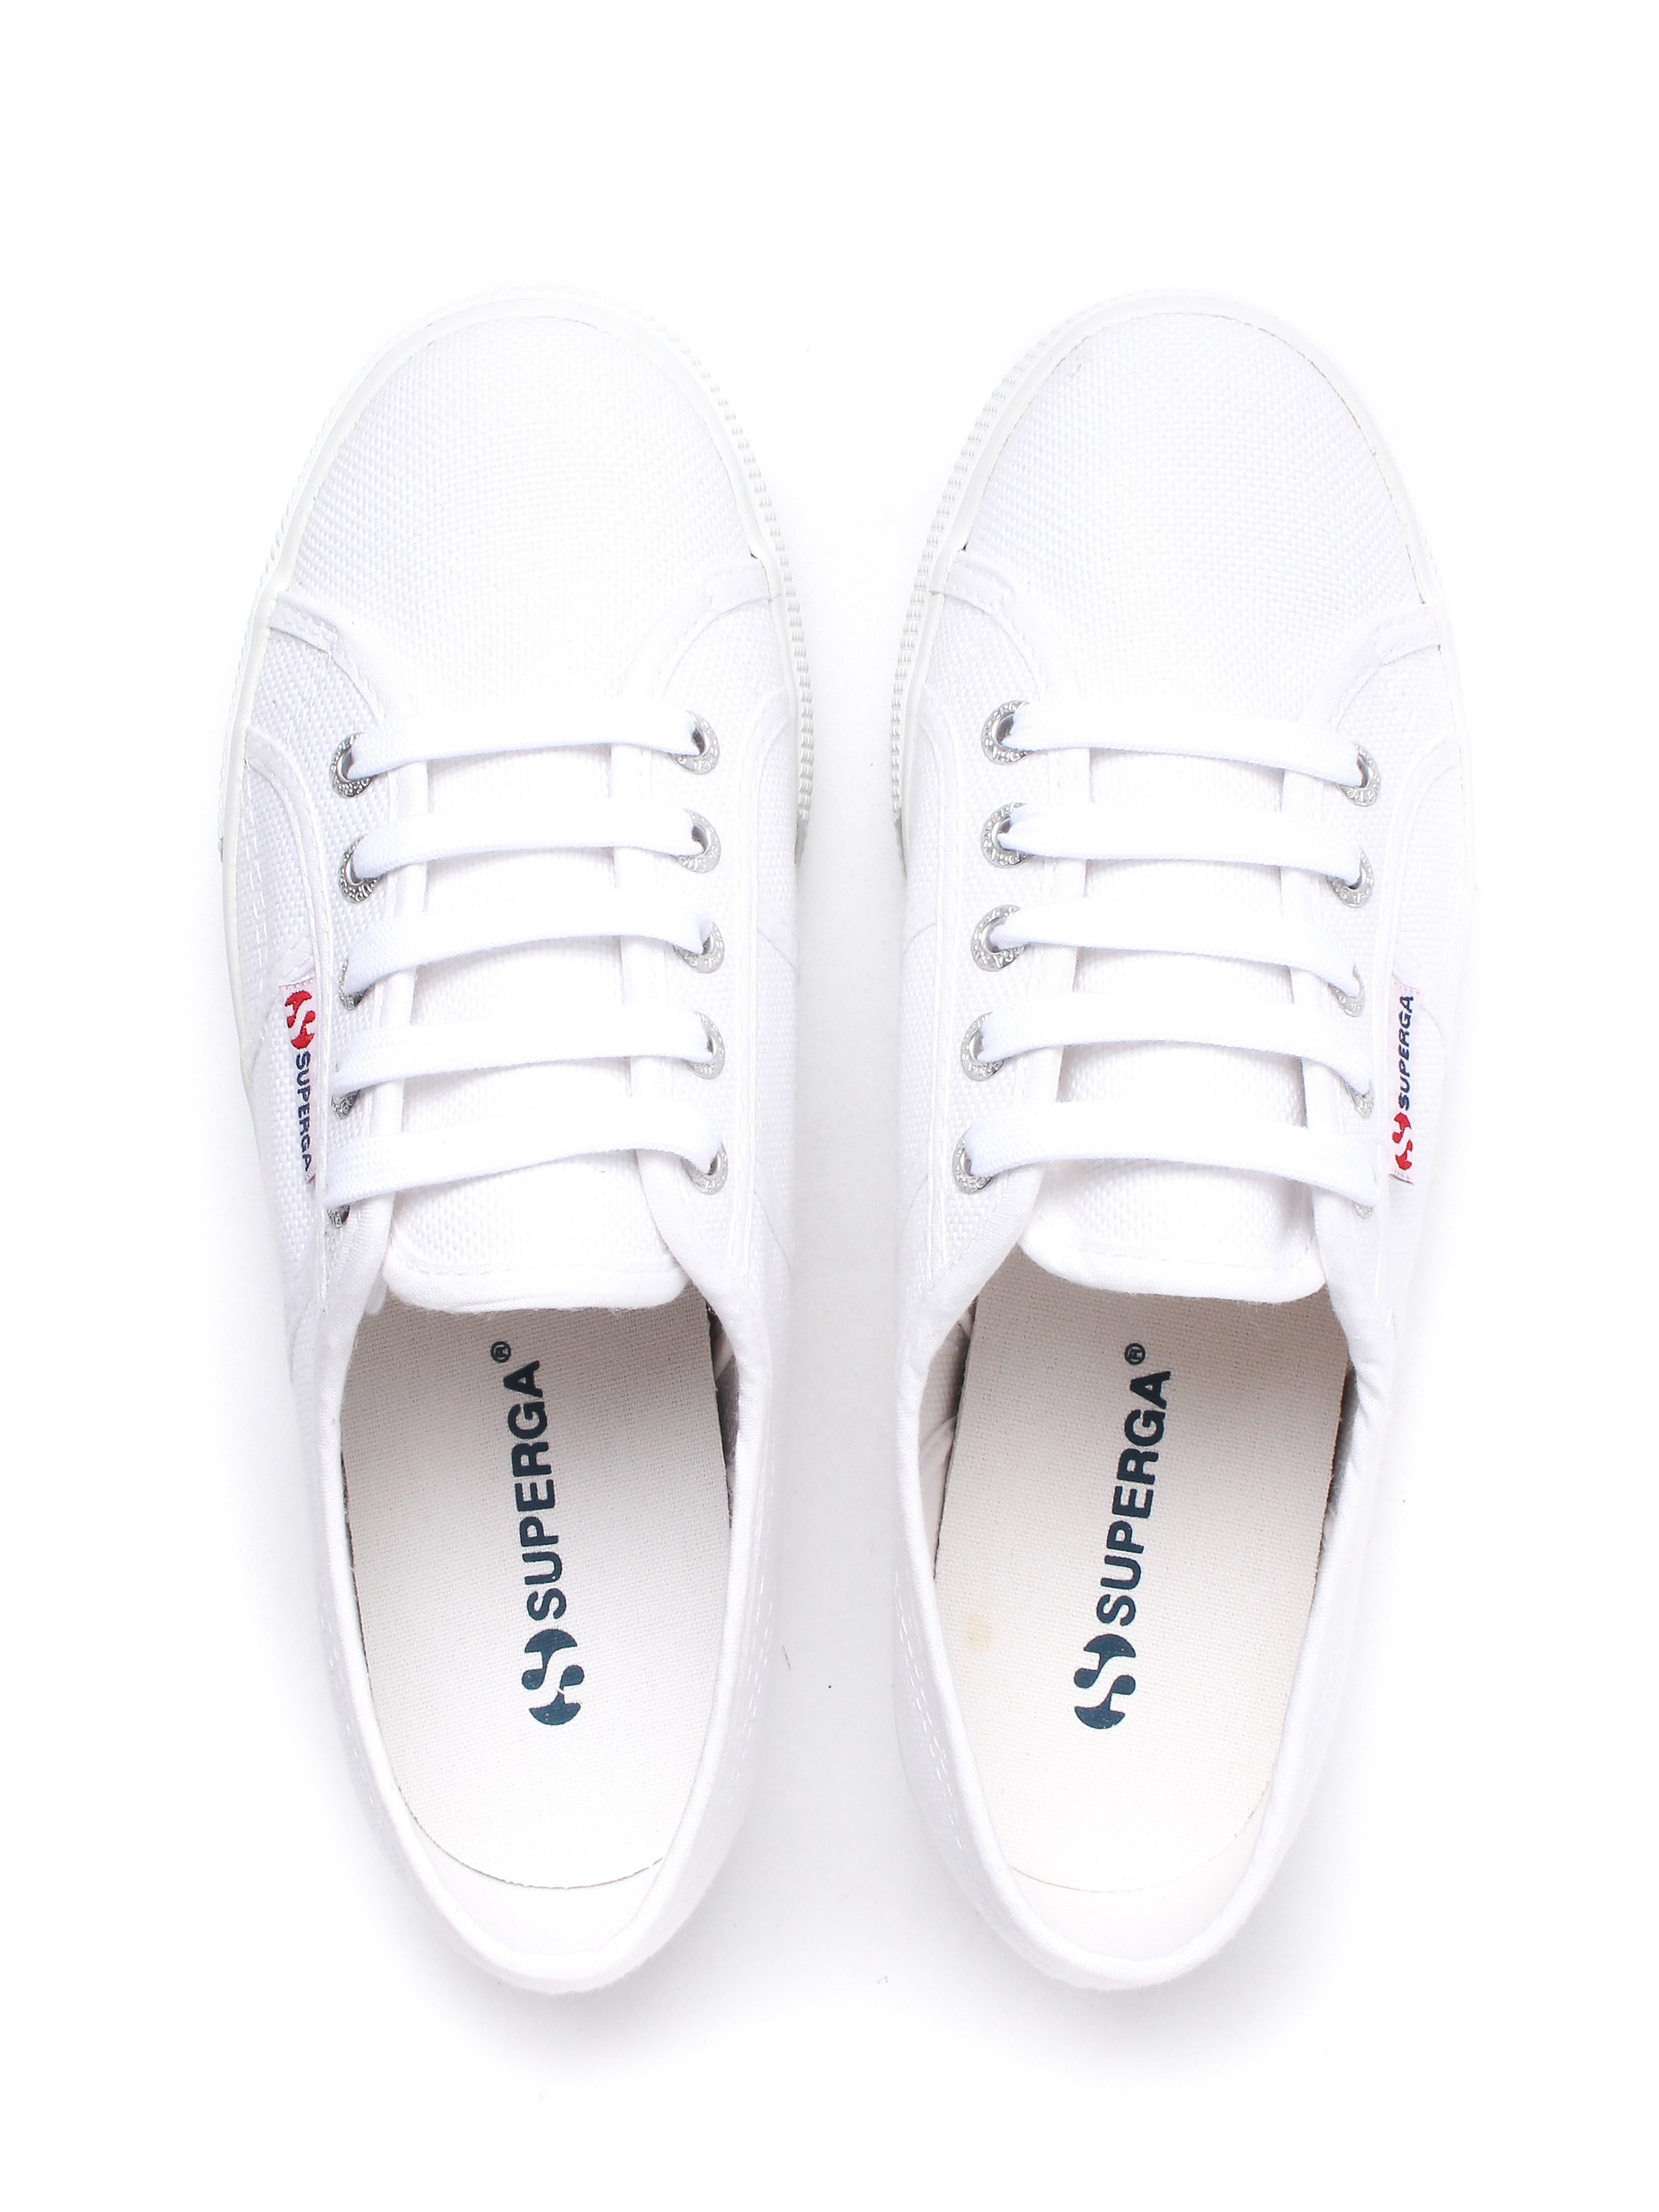 Superga Women's 2790 Linea Up & Down Flatform Canvas Trainers - White